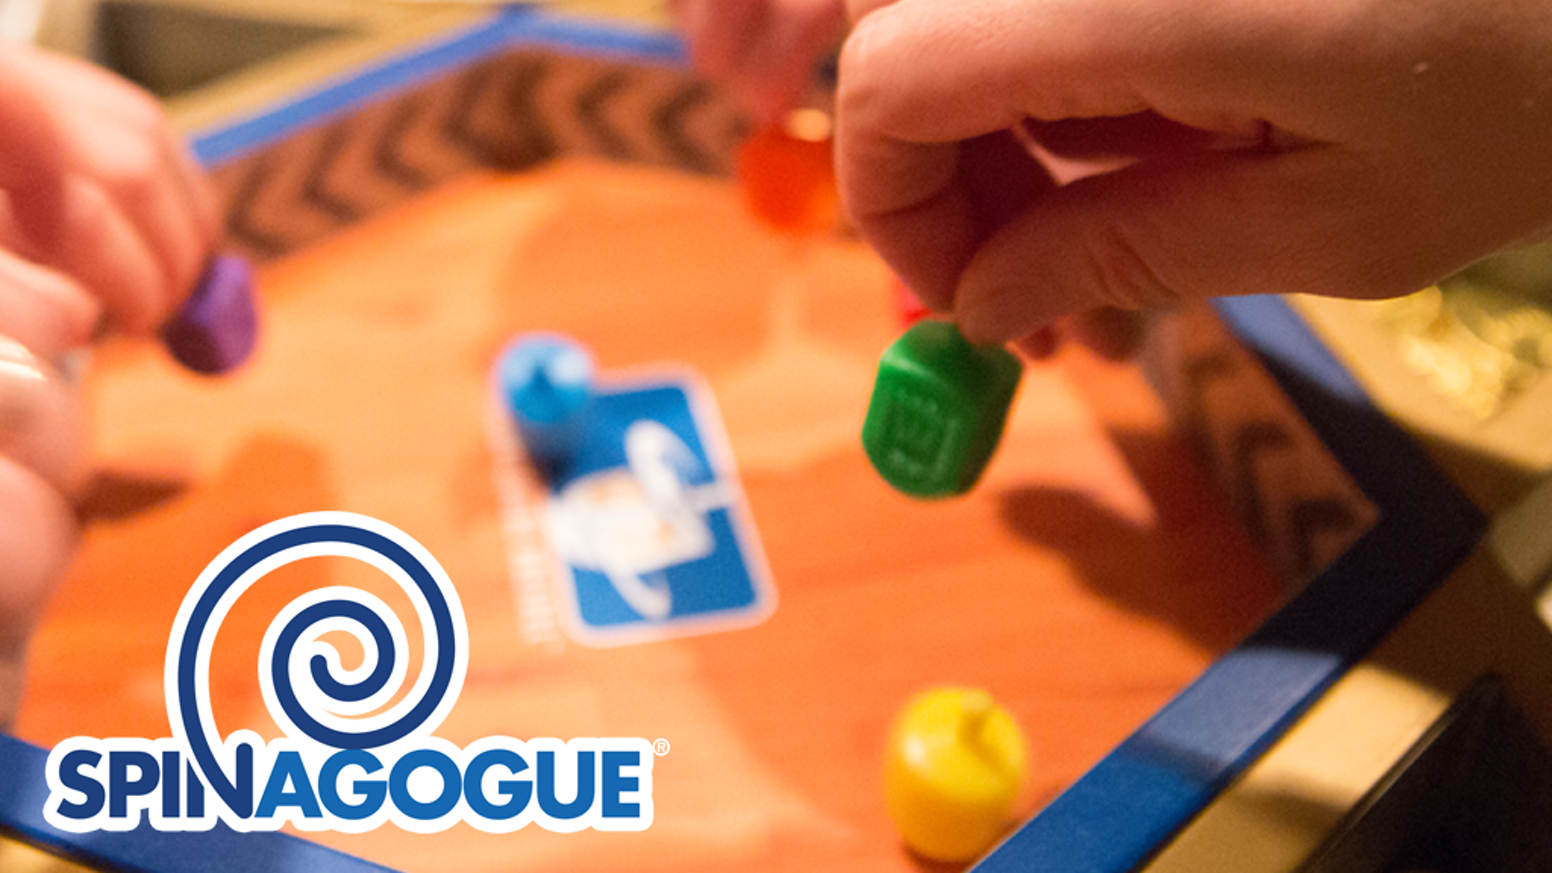 Dreidel is now a tabletop game of skill, played competitively and socially by spinners of all ages. No Gelt, No Glory!